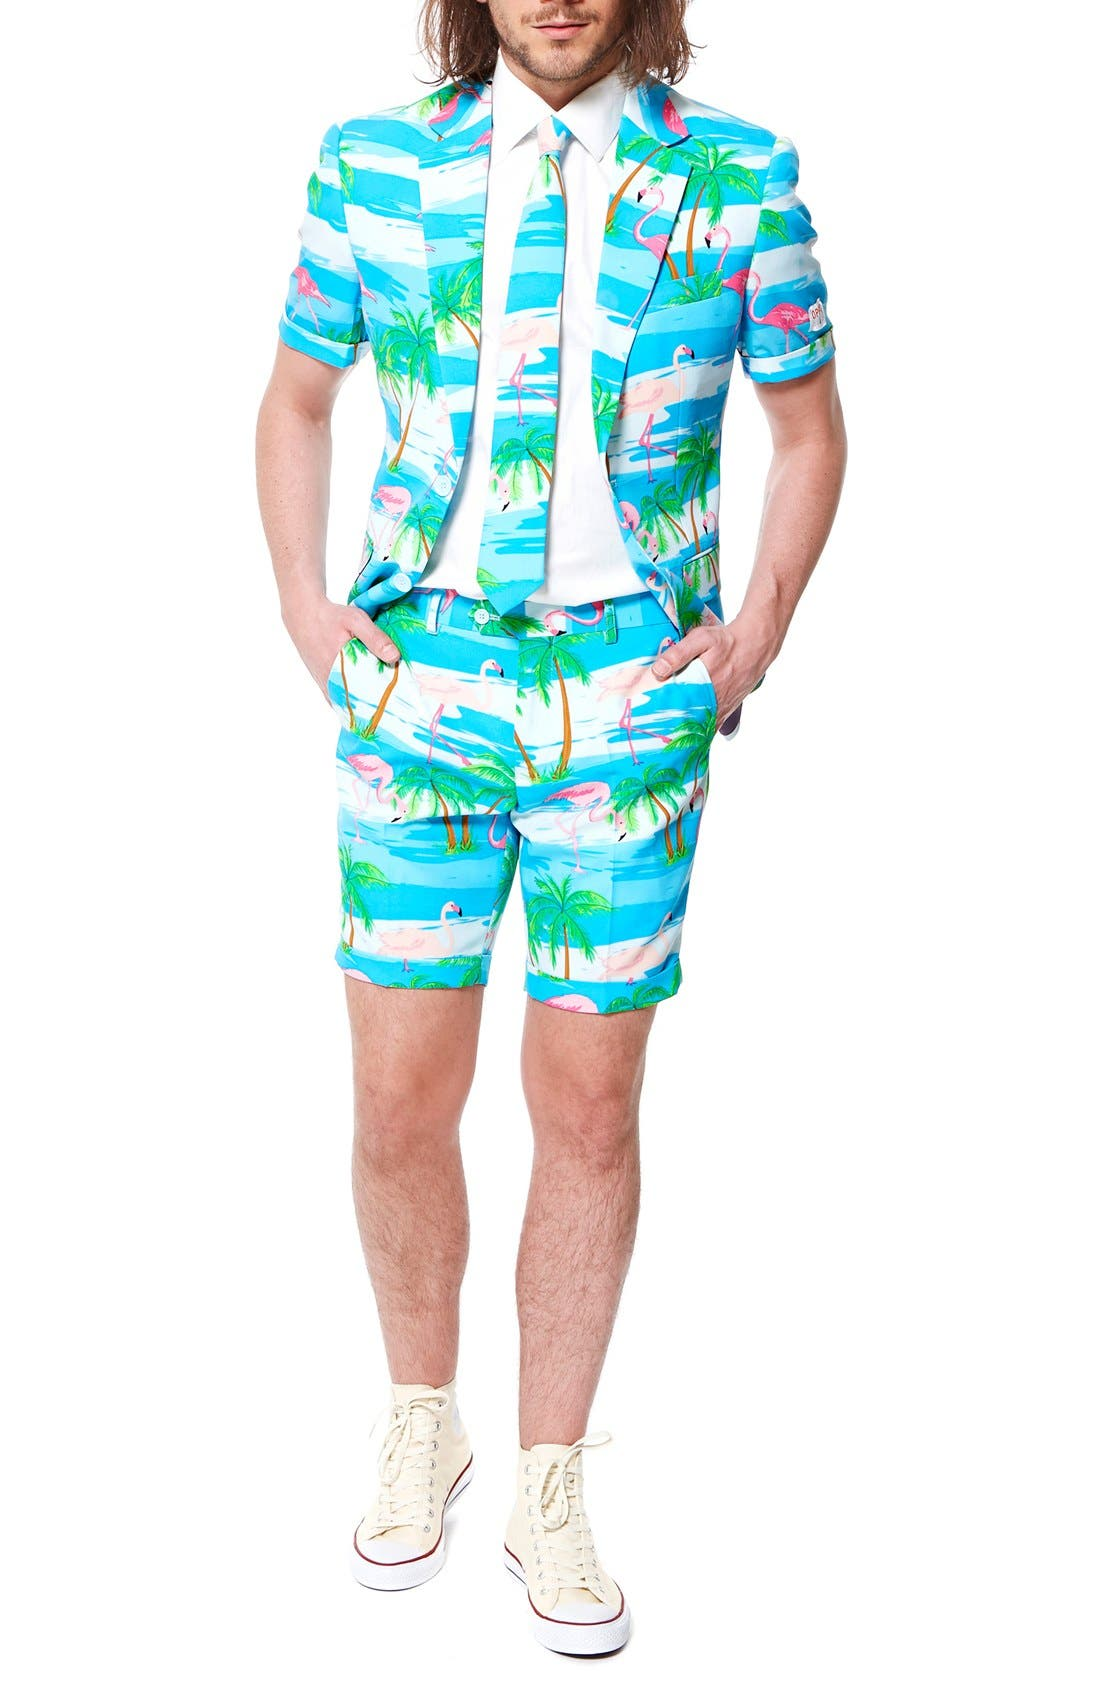 Alternate Image 1 Selected - OppoSuits 'Flaminguy - Summer' Trim Fit Two-Piece Short Suit with Tie